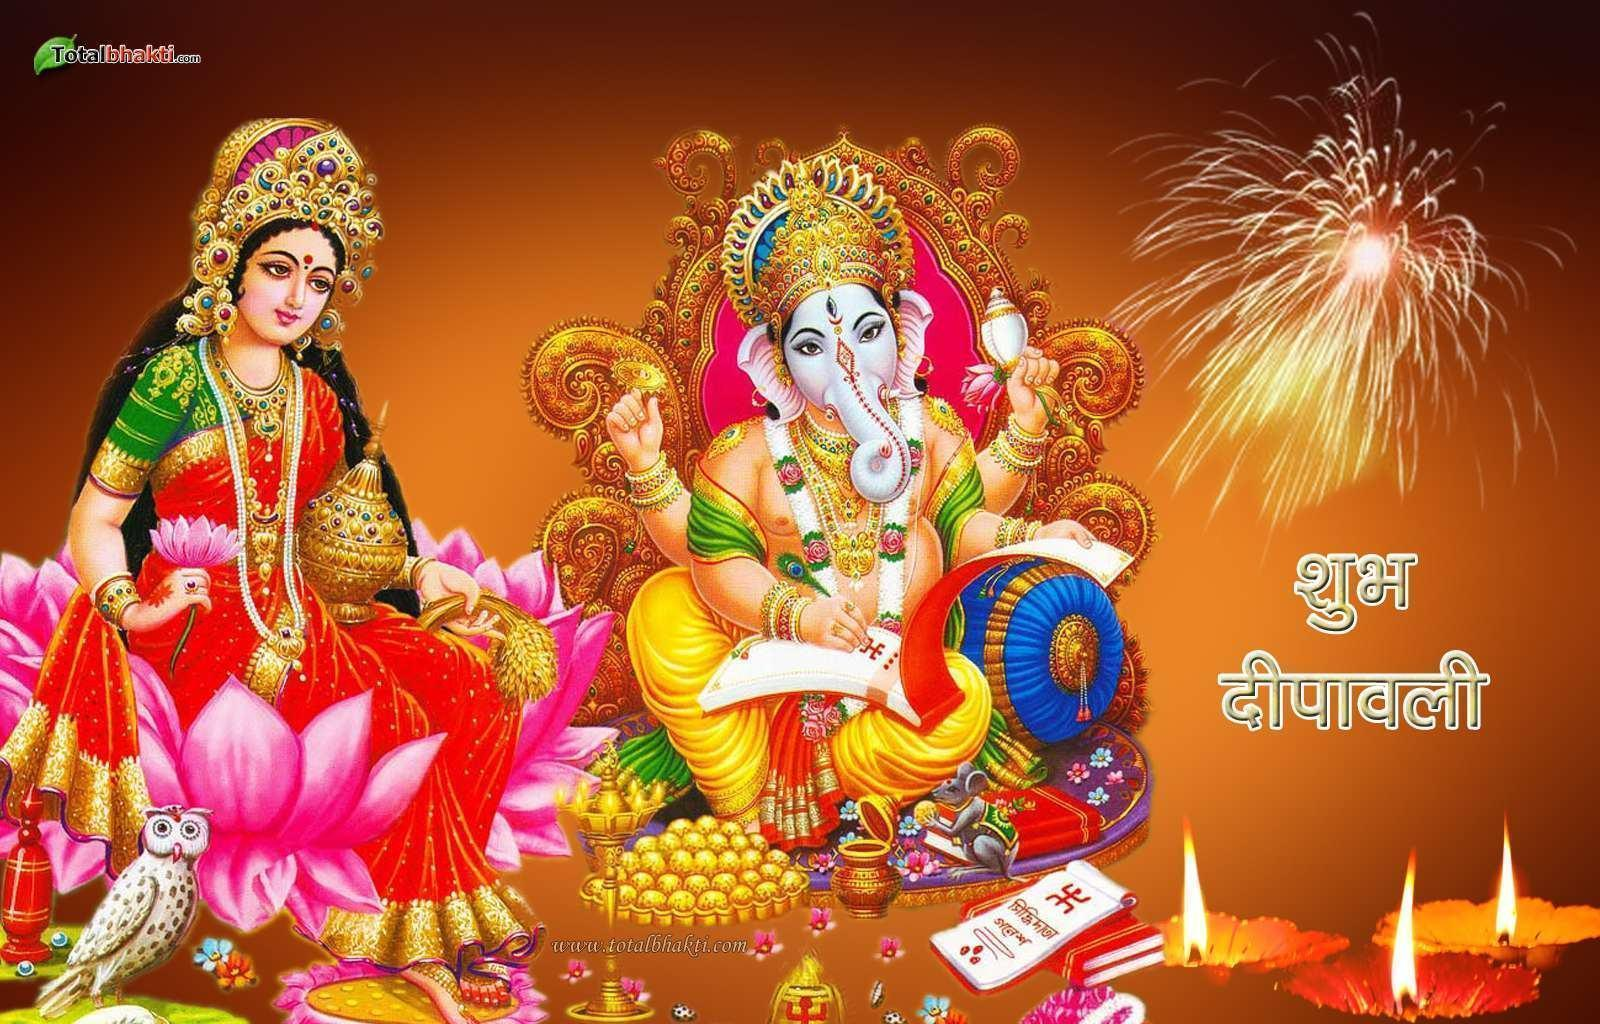 Hindu picture Lord Ganesh HD God Image,Wallpapers & Backgrounds